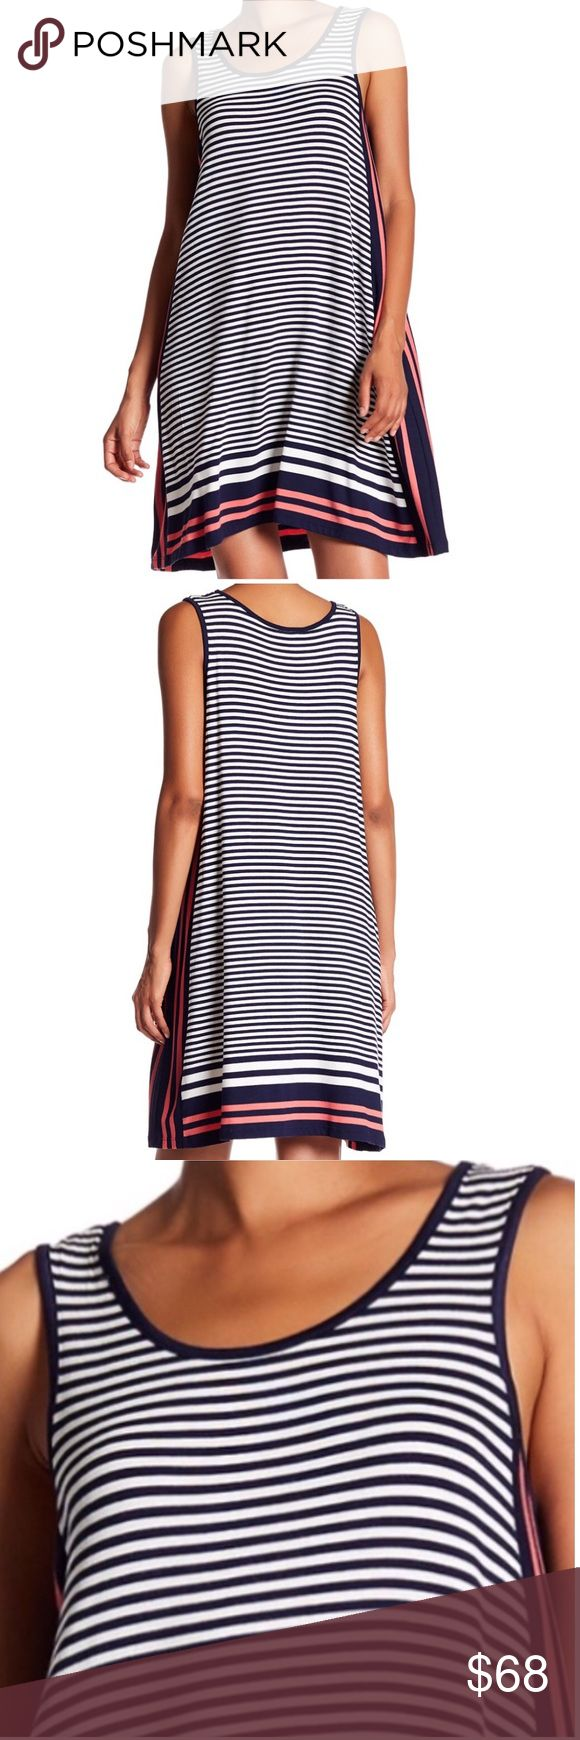 MAX STUDIO Stripe Tank Trapeze Dress size Small MAX STUDIO Stripe Tank Trapeze Dress size Small   BRAND: Max Studio SIZE: Small COLOR: NVCORLTS (Navy & Coral) MATERIAL: 95% rayon, 5% spandex CARE: Machine wash cold. Lay flat to dry  CONDITION: NEW with tags STYLE: 7904F65 RSRP: $98 DETAILS: Stripes Tank dress. Scoop neck. Sleeveless. Slip on style. Made in China.   True to size   APPROXIMATE MEASUREMENTS:  Length: 39 inches Max Studio Dresses Mini